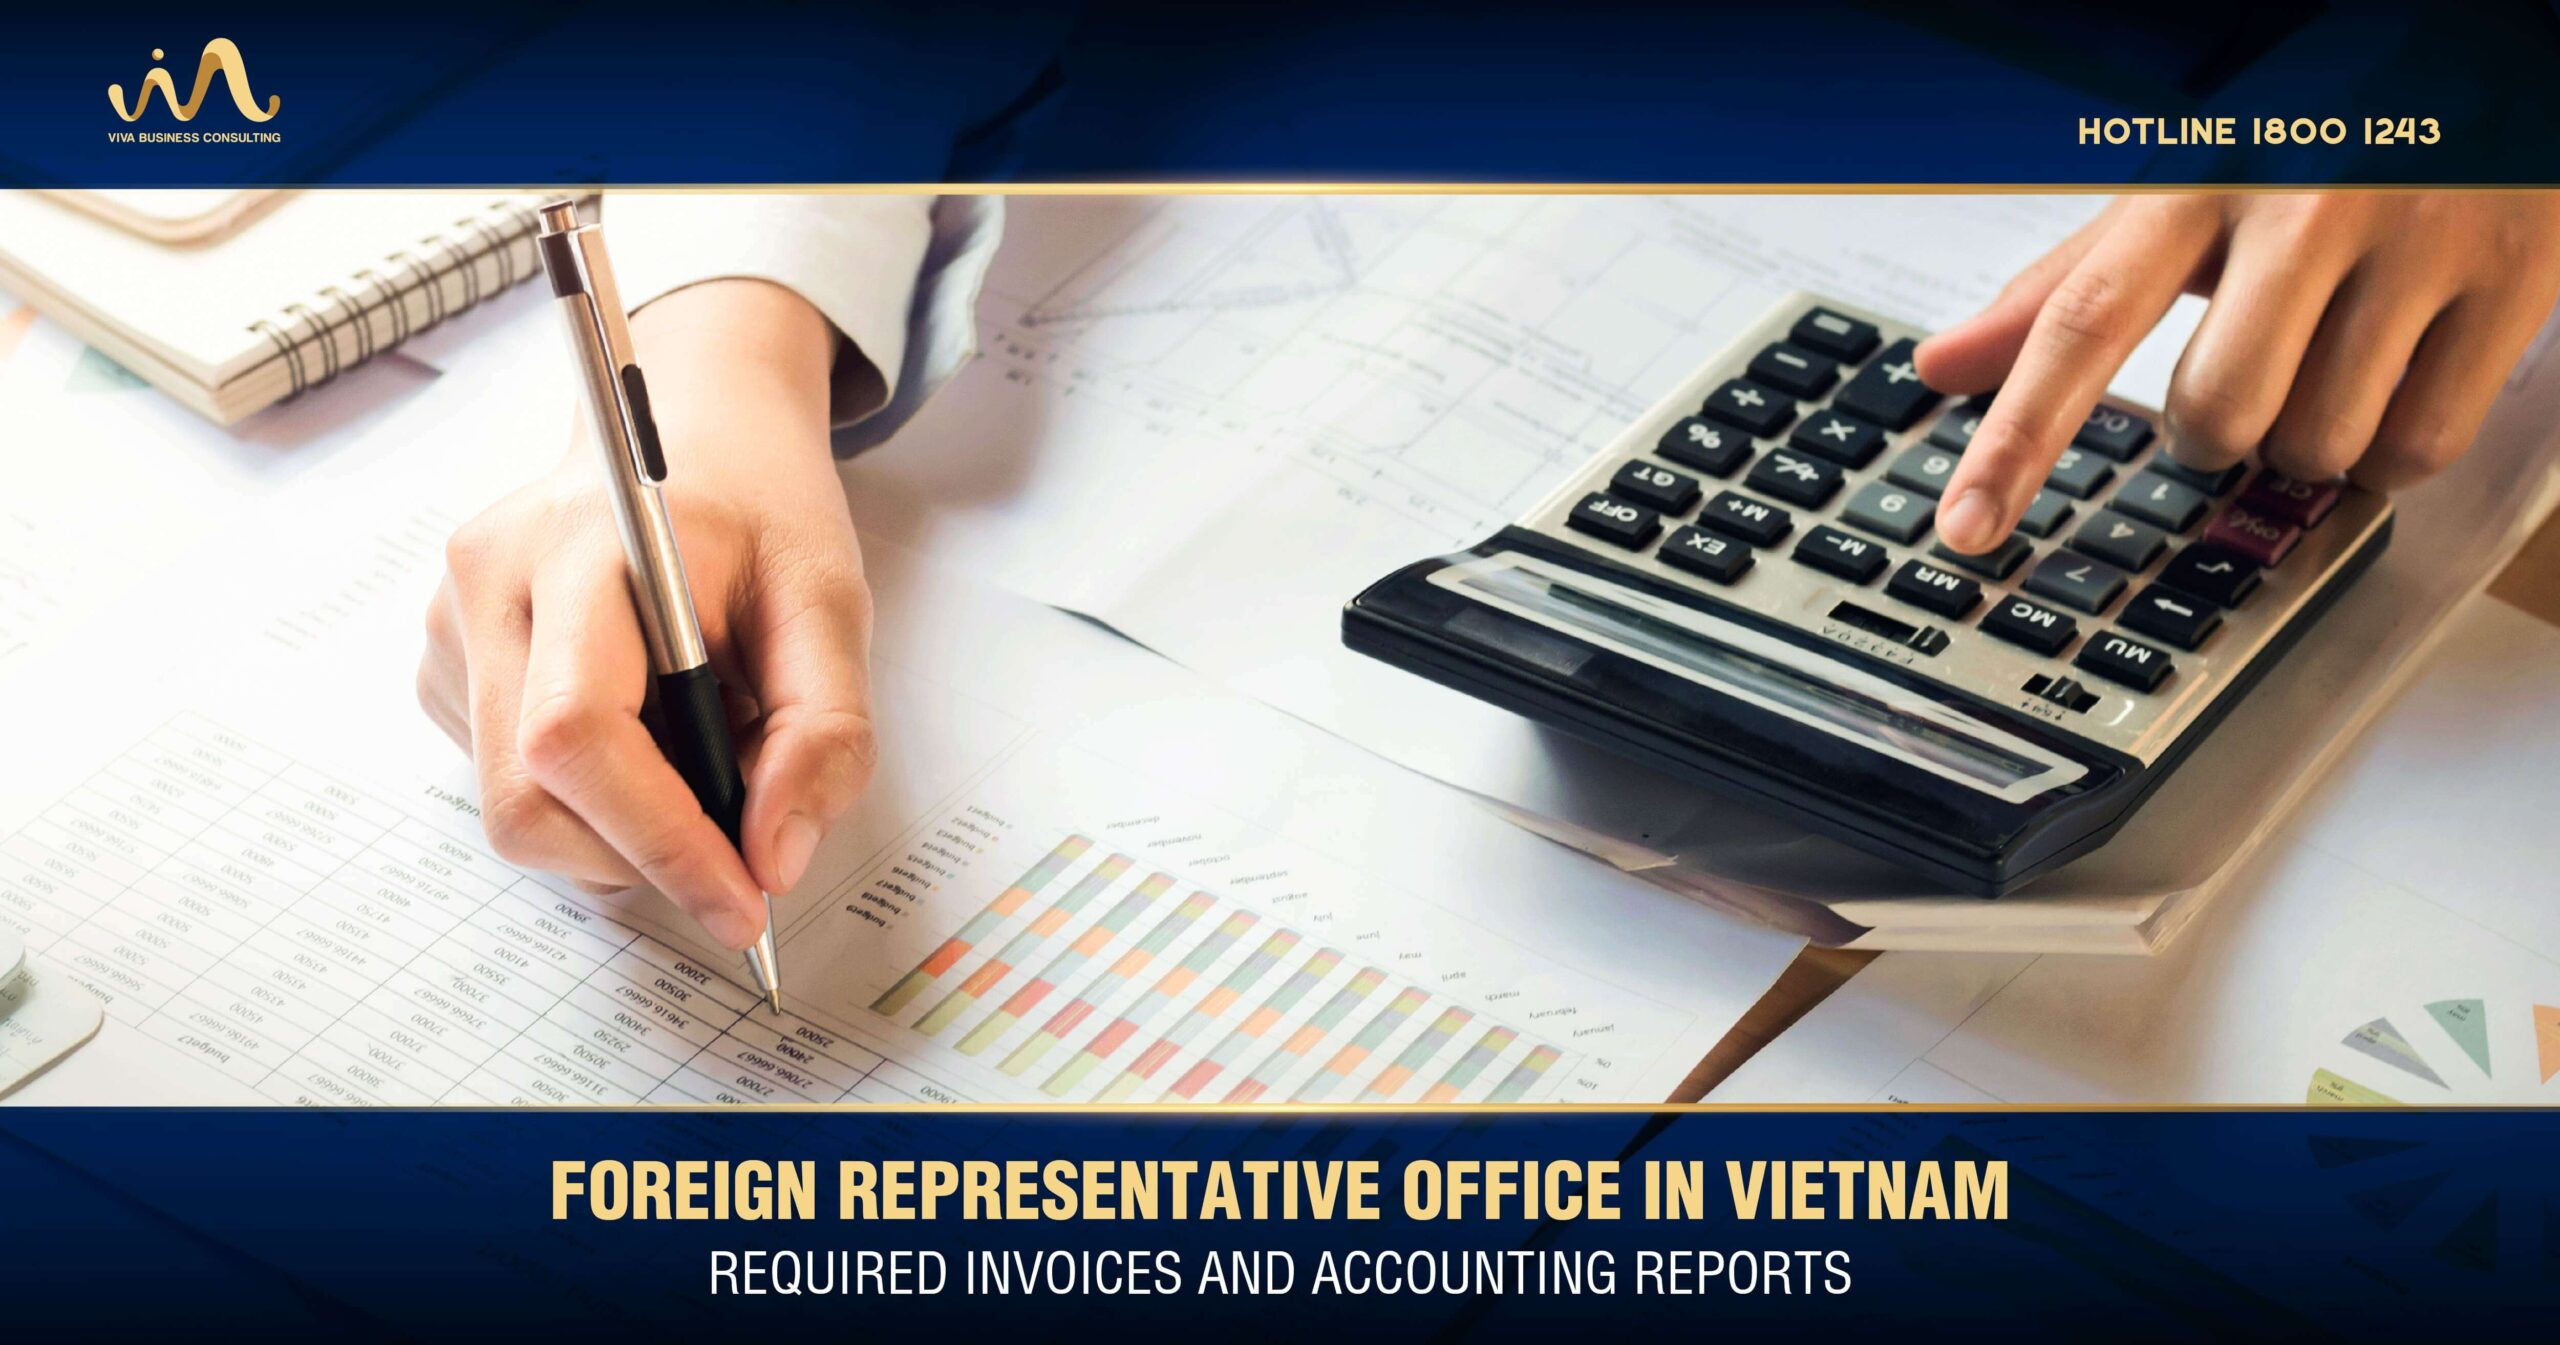 Cashbook And Petty Cash For Tax Inspection Of Representative Office In Vietnam